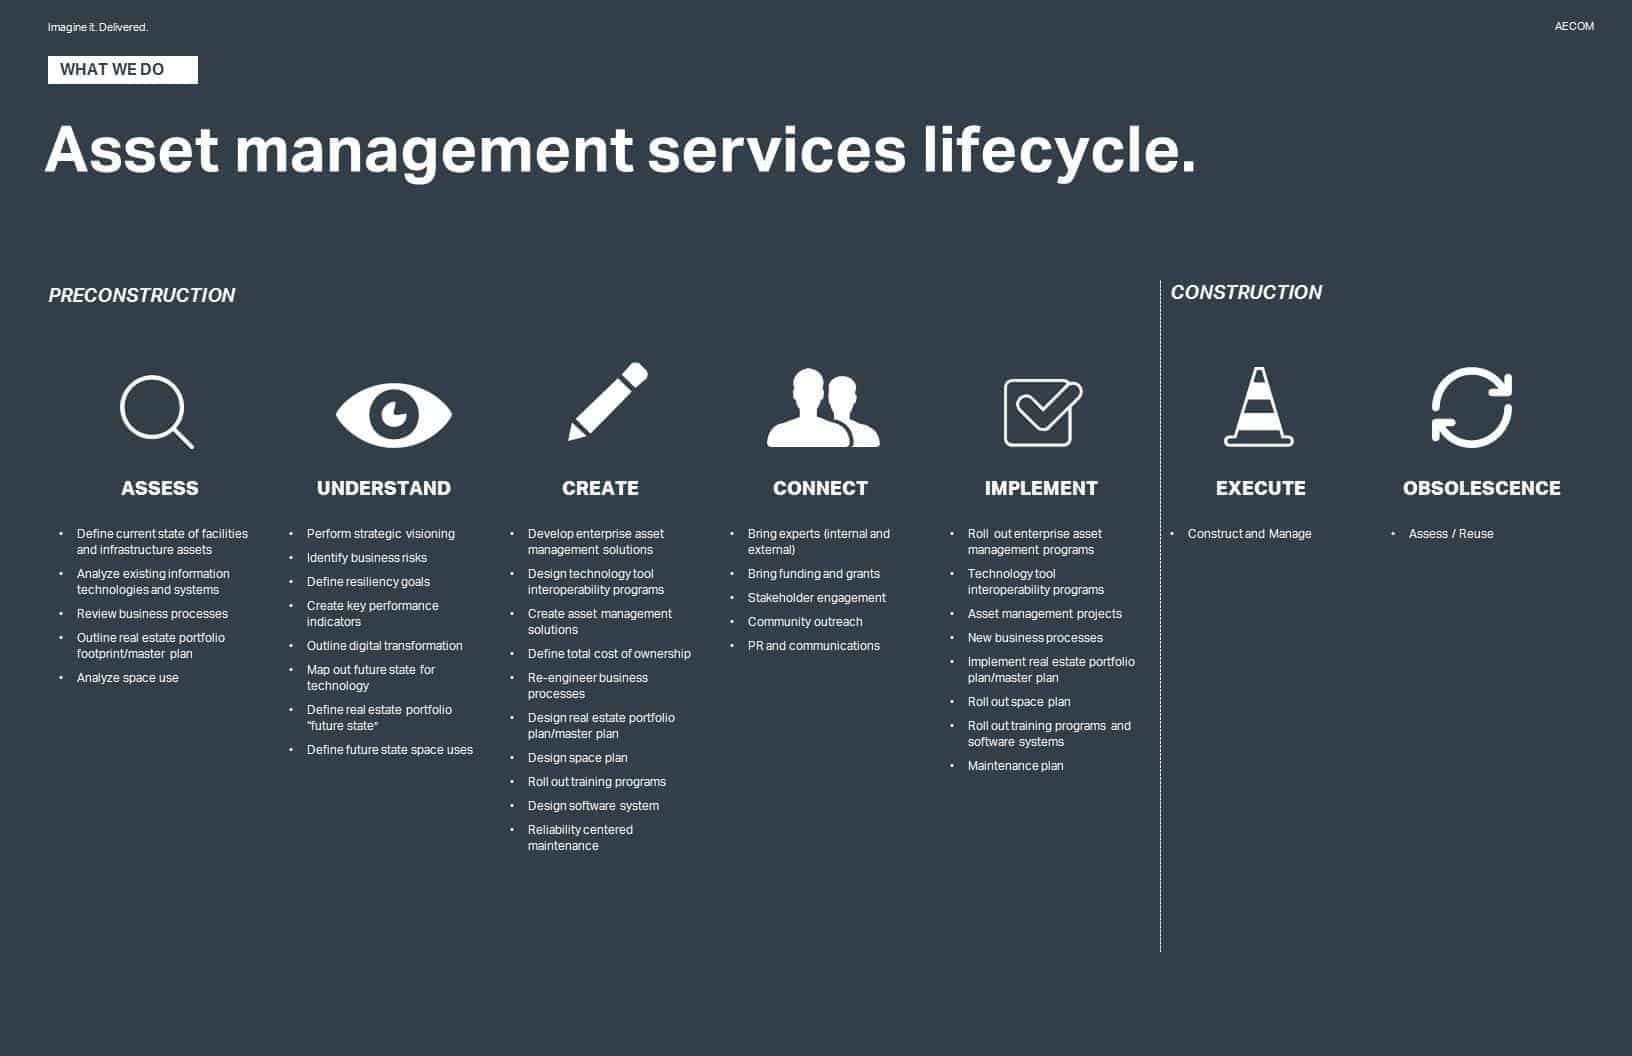 Asset management services lifecycle